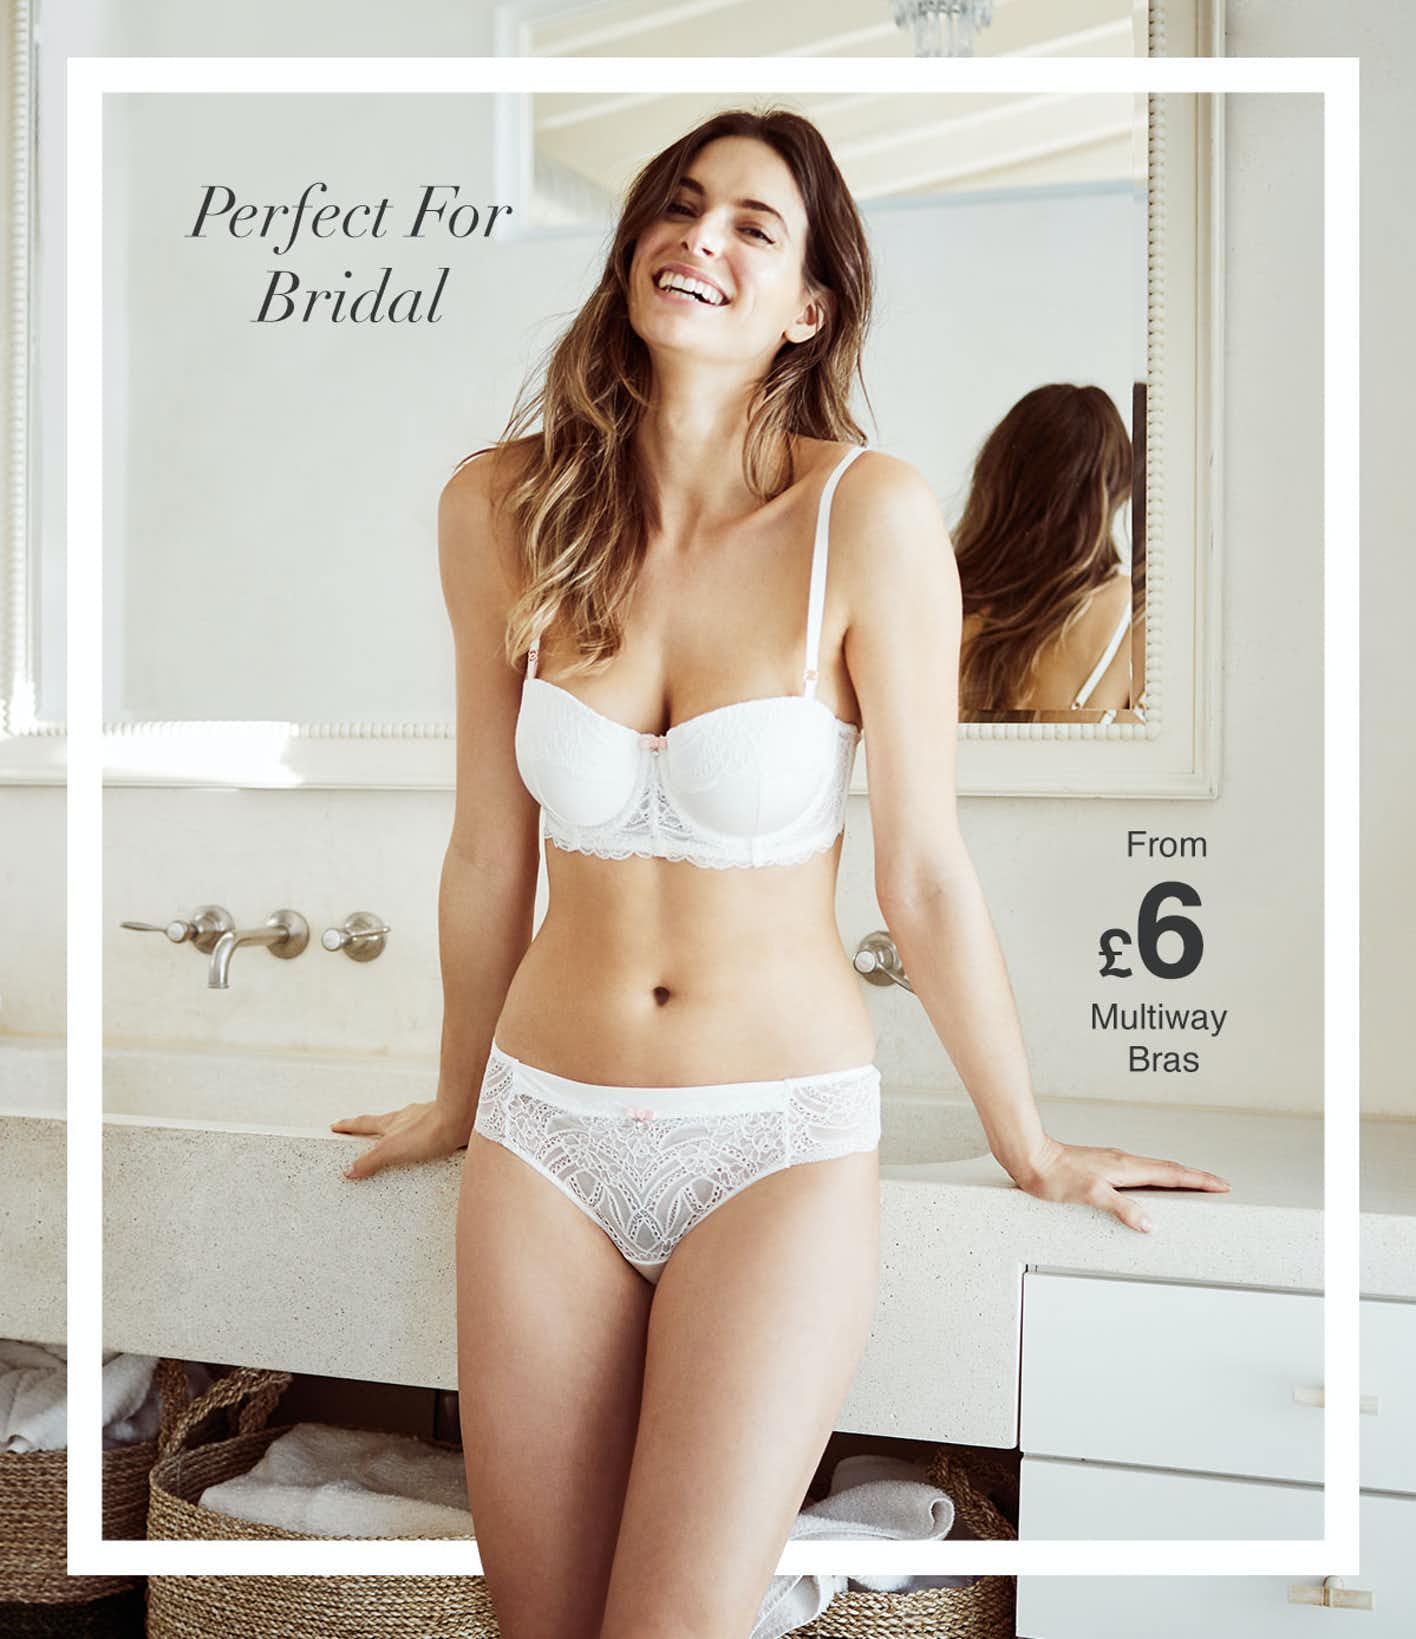 f5171ee71d0 Women's Lingerie | Lingerie Sets, Trends & Buying Guides – Matalan